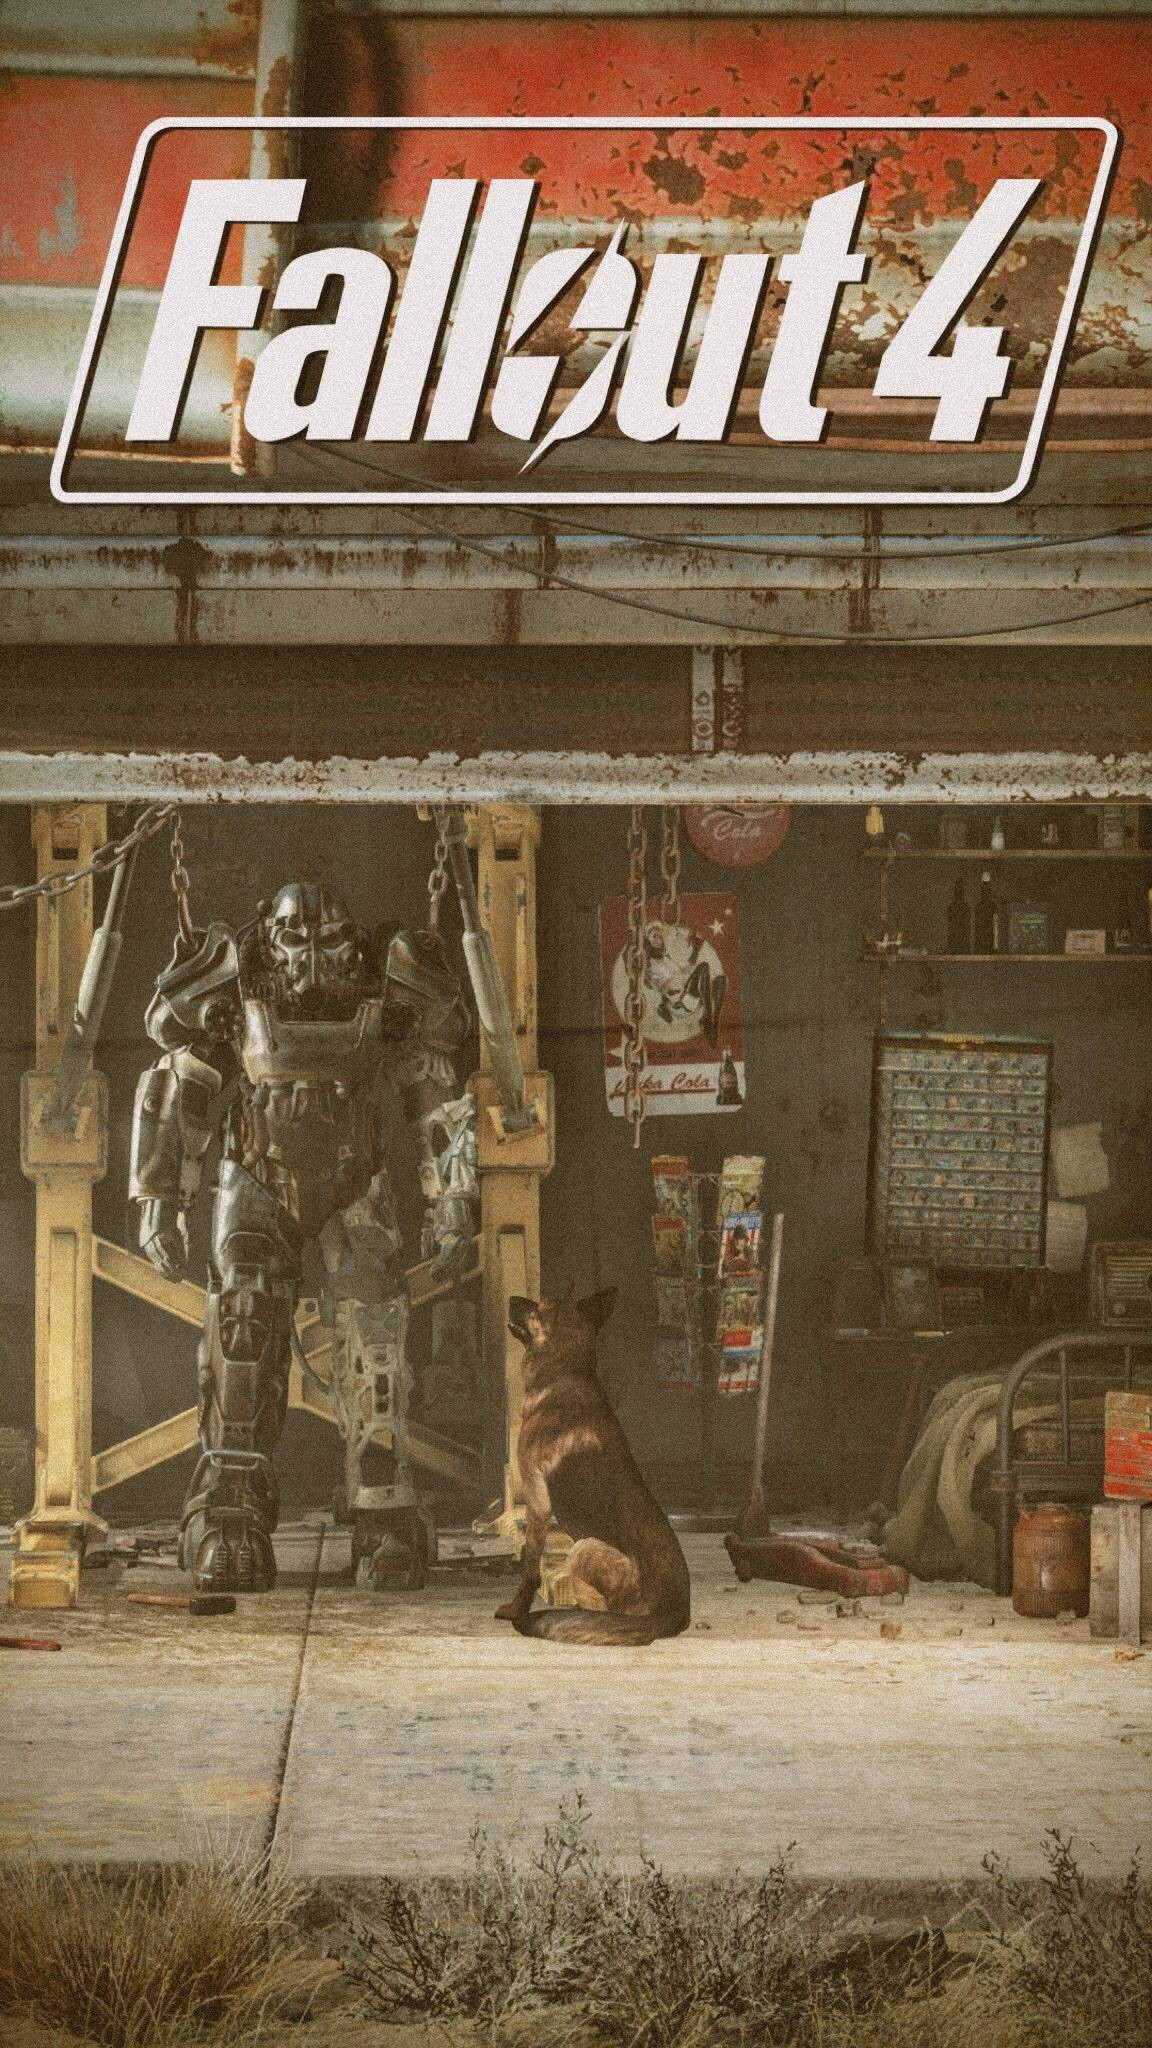 Fall Out Boy Iphone 5 Wallpaper Fallout 4 Phone Wallpaper 183 ① Download Free High Resolution